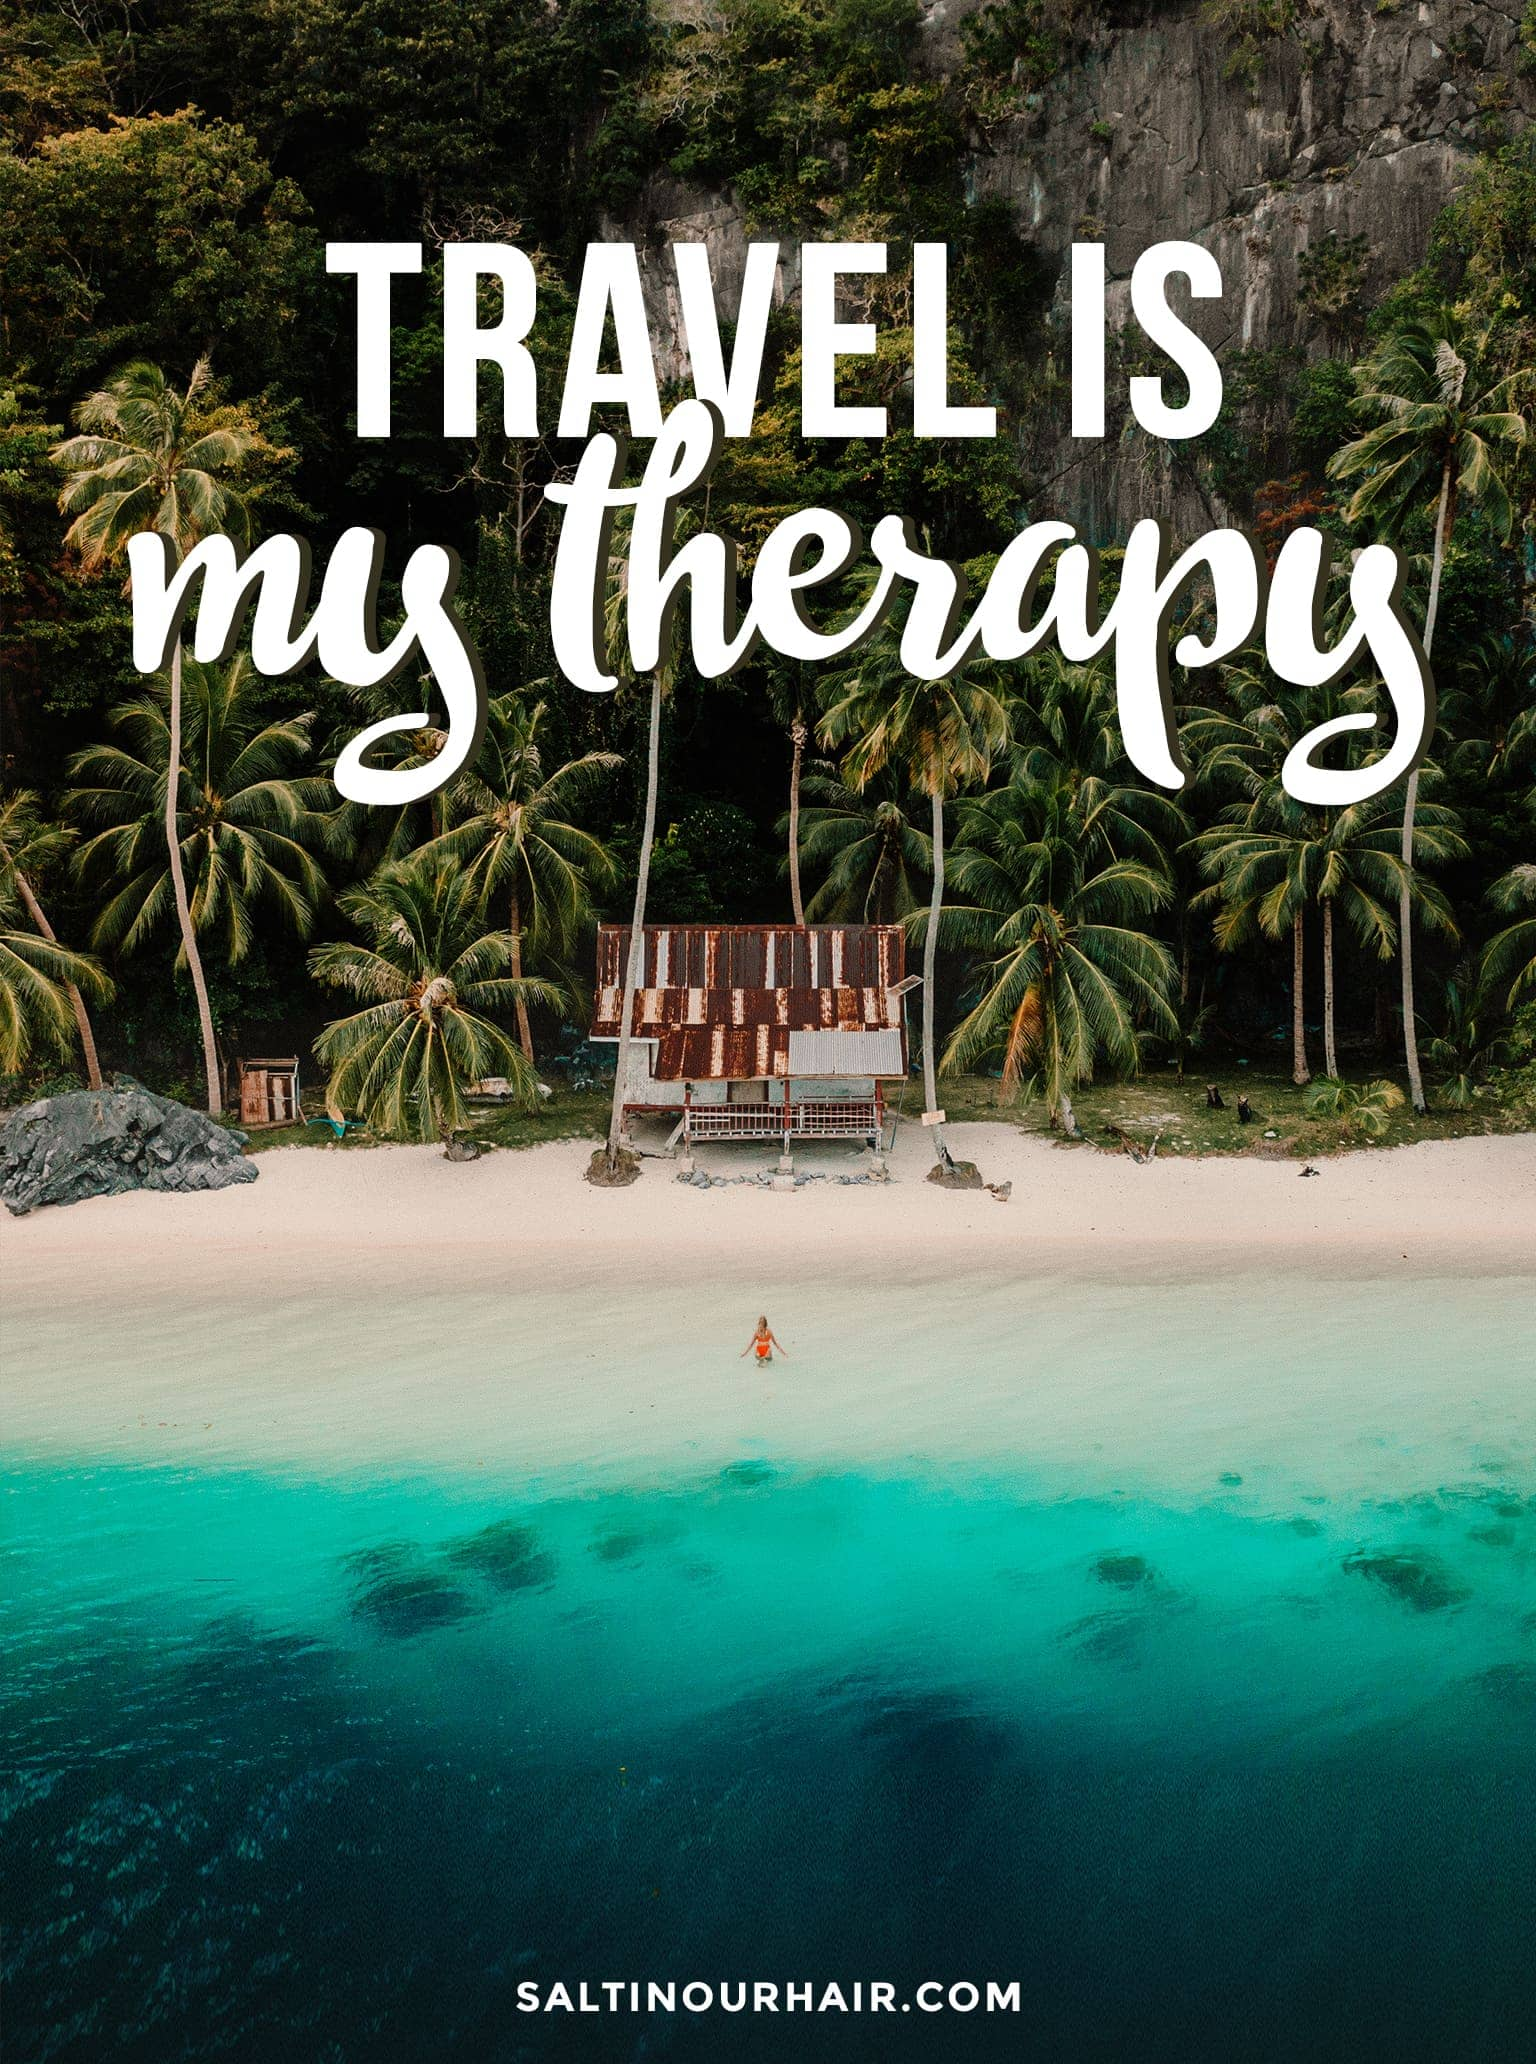 BEST TRAVEL QUOTES - 50 x Most Inspirational Travel Quotes